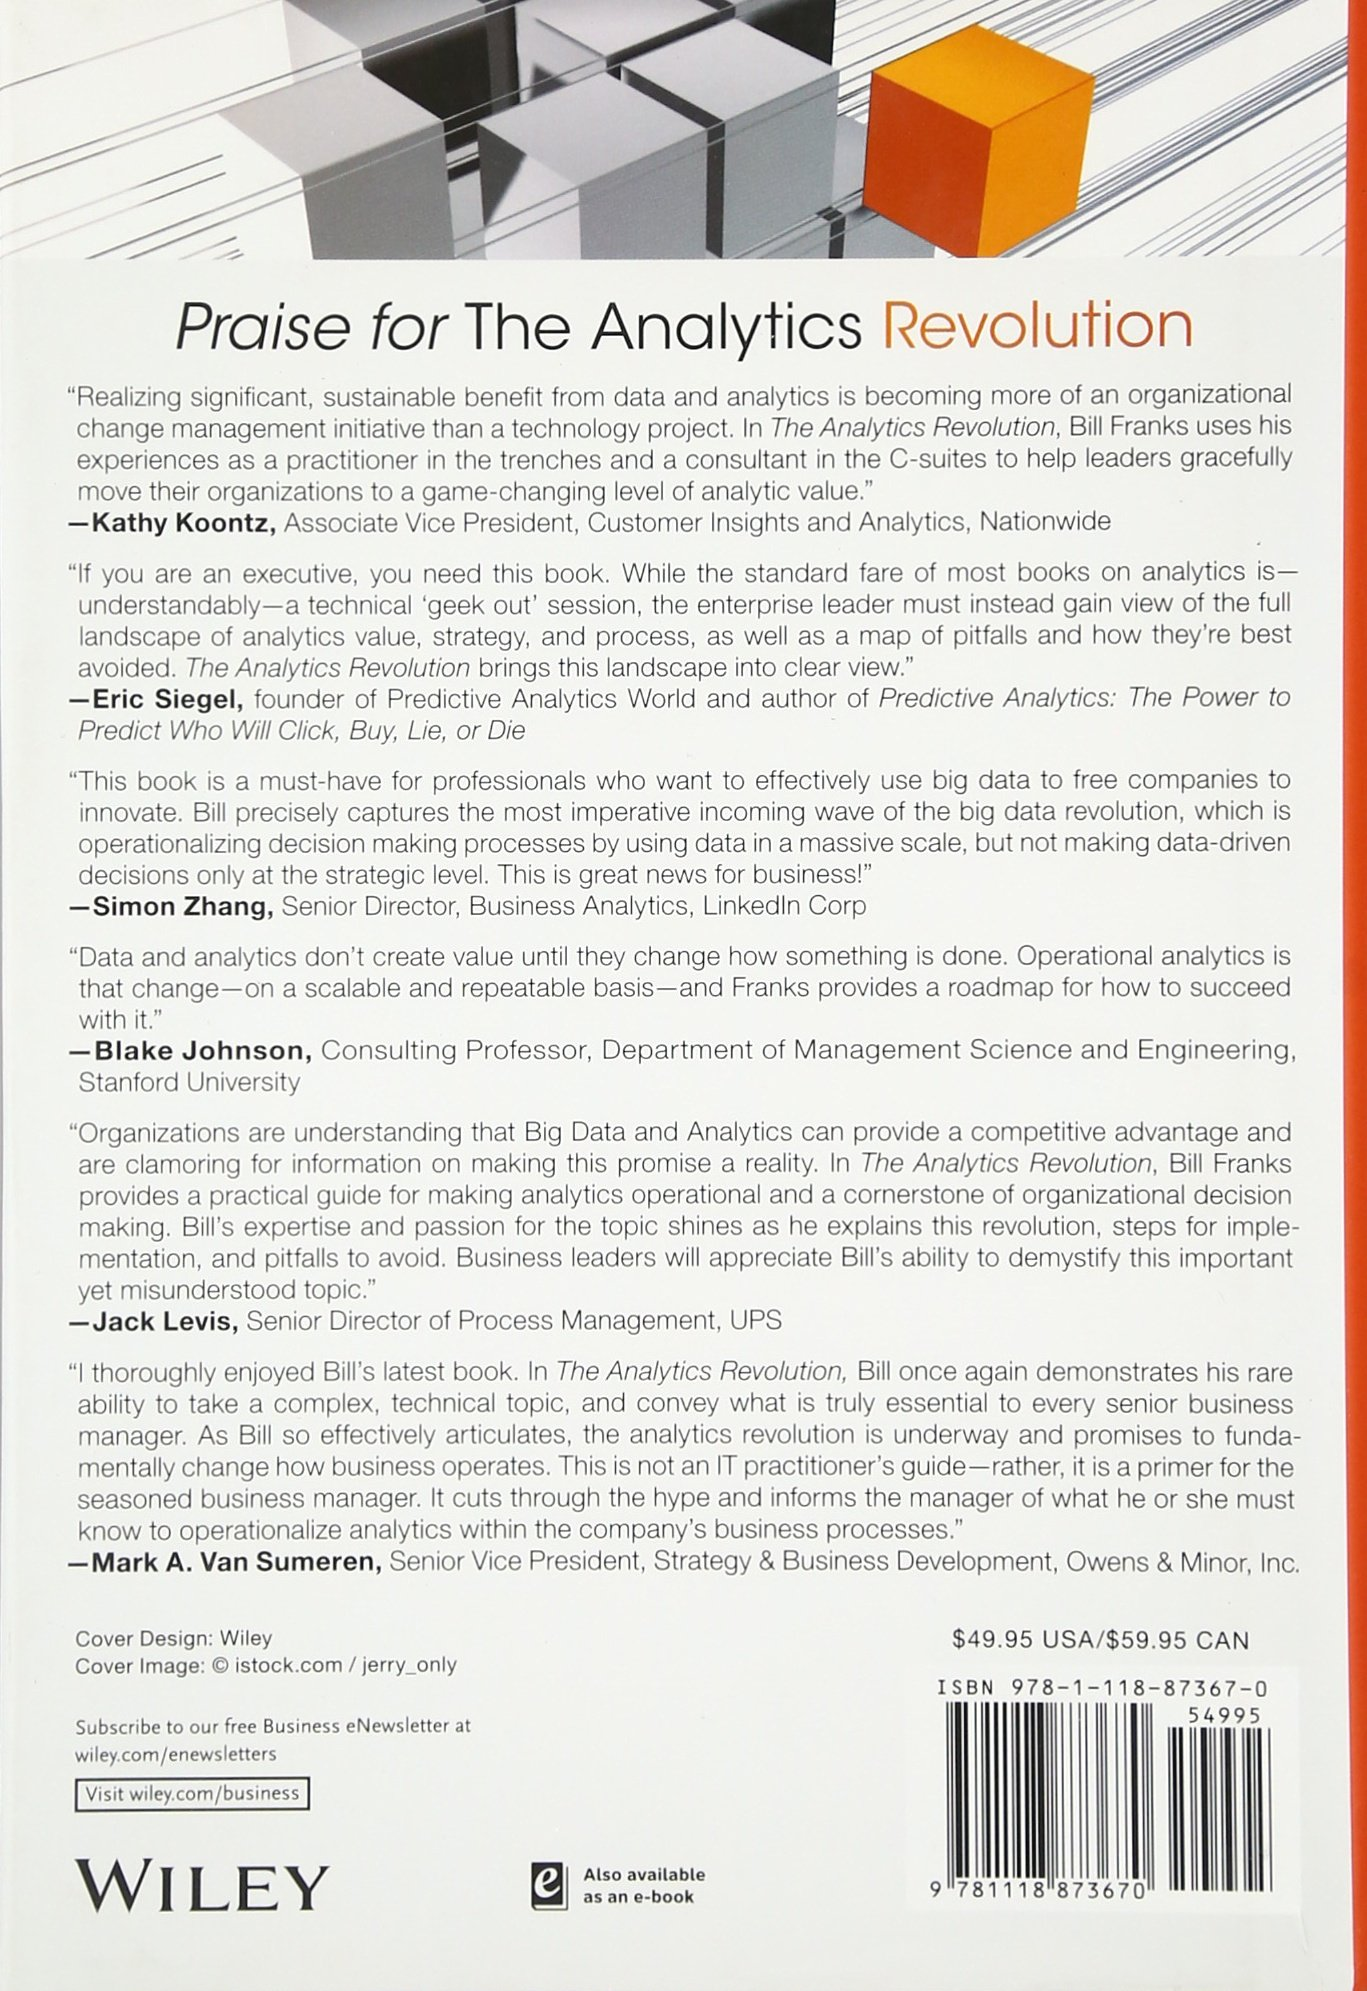 the analytics revolution how to improve your business by making the analytics revolution how to improve your business by making analytics operational in the big data era bill franks 9781118873670 com books